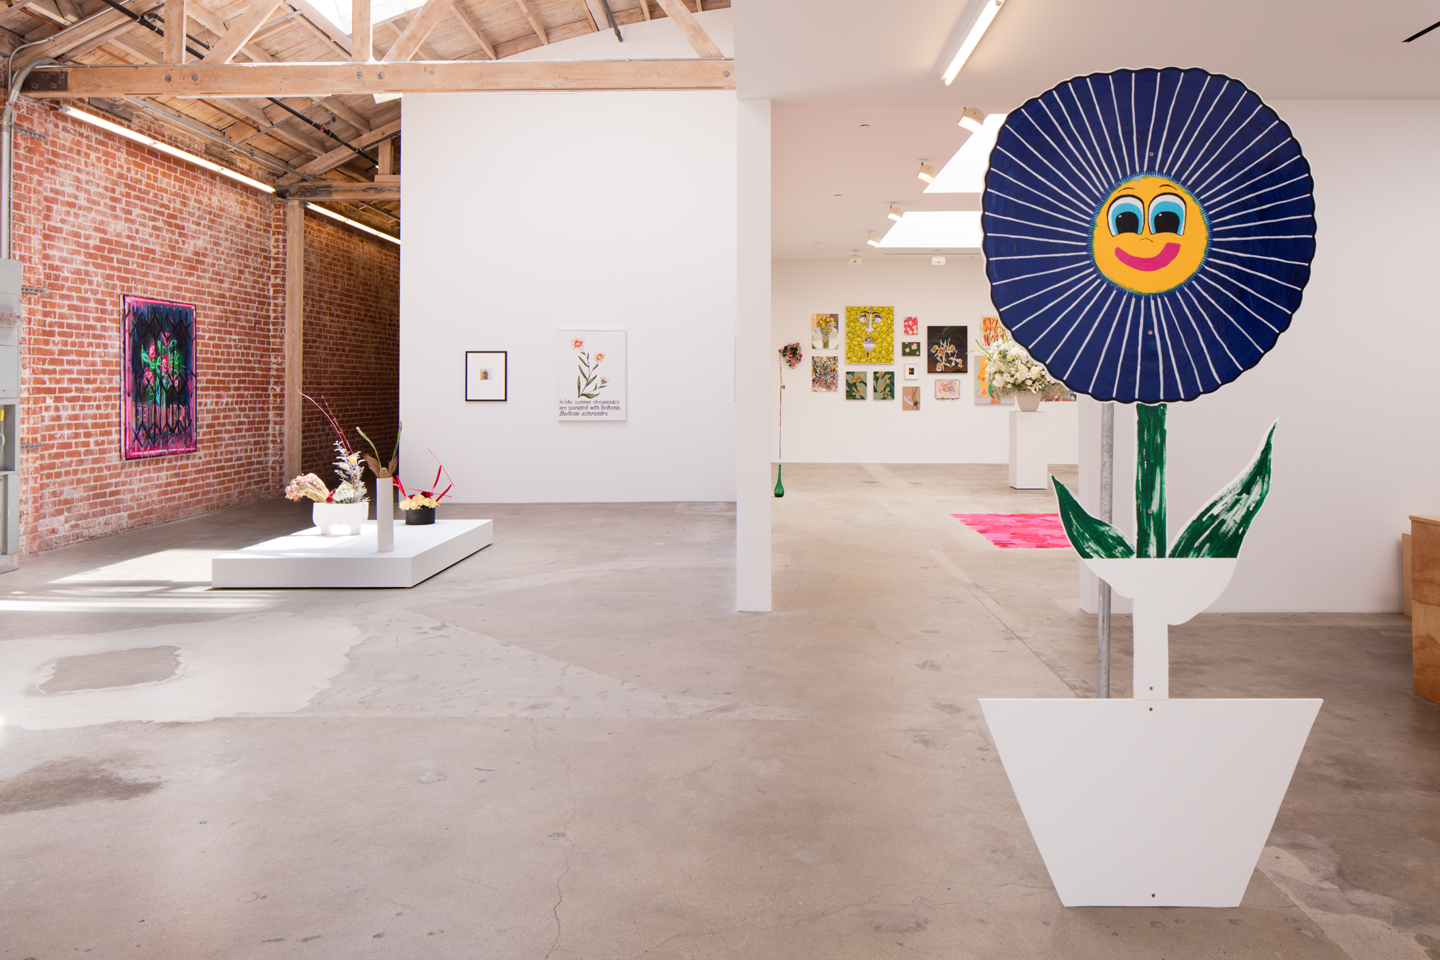 A Change of Heart installation view at Hannah Hoffman Gallery, Los Angeles, 2016. Courtesy: Hannah Hoffman Gallery, Los Angeles. Photo: Michael Underwood